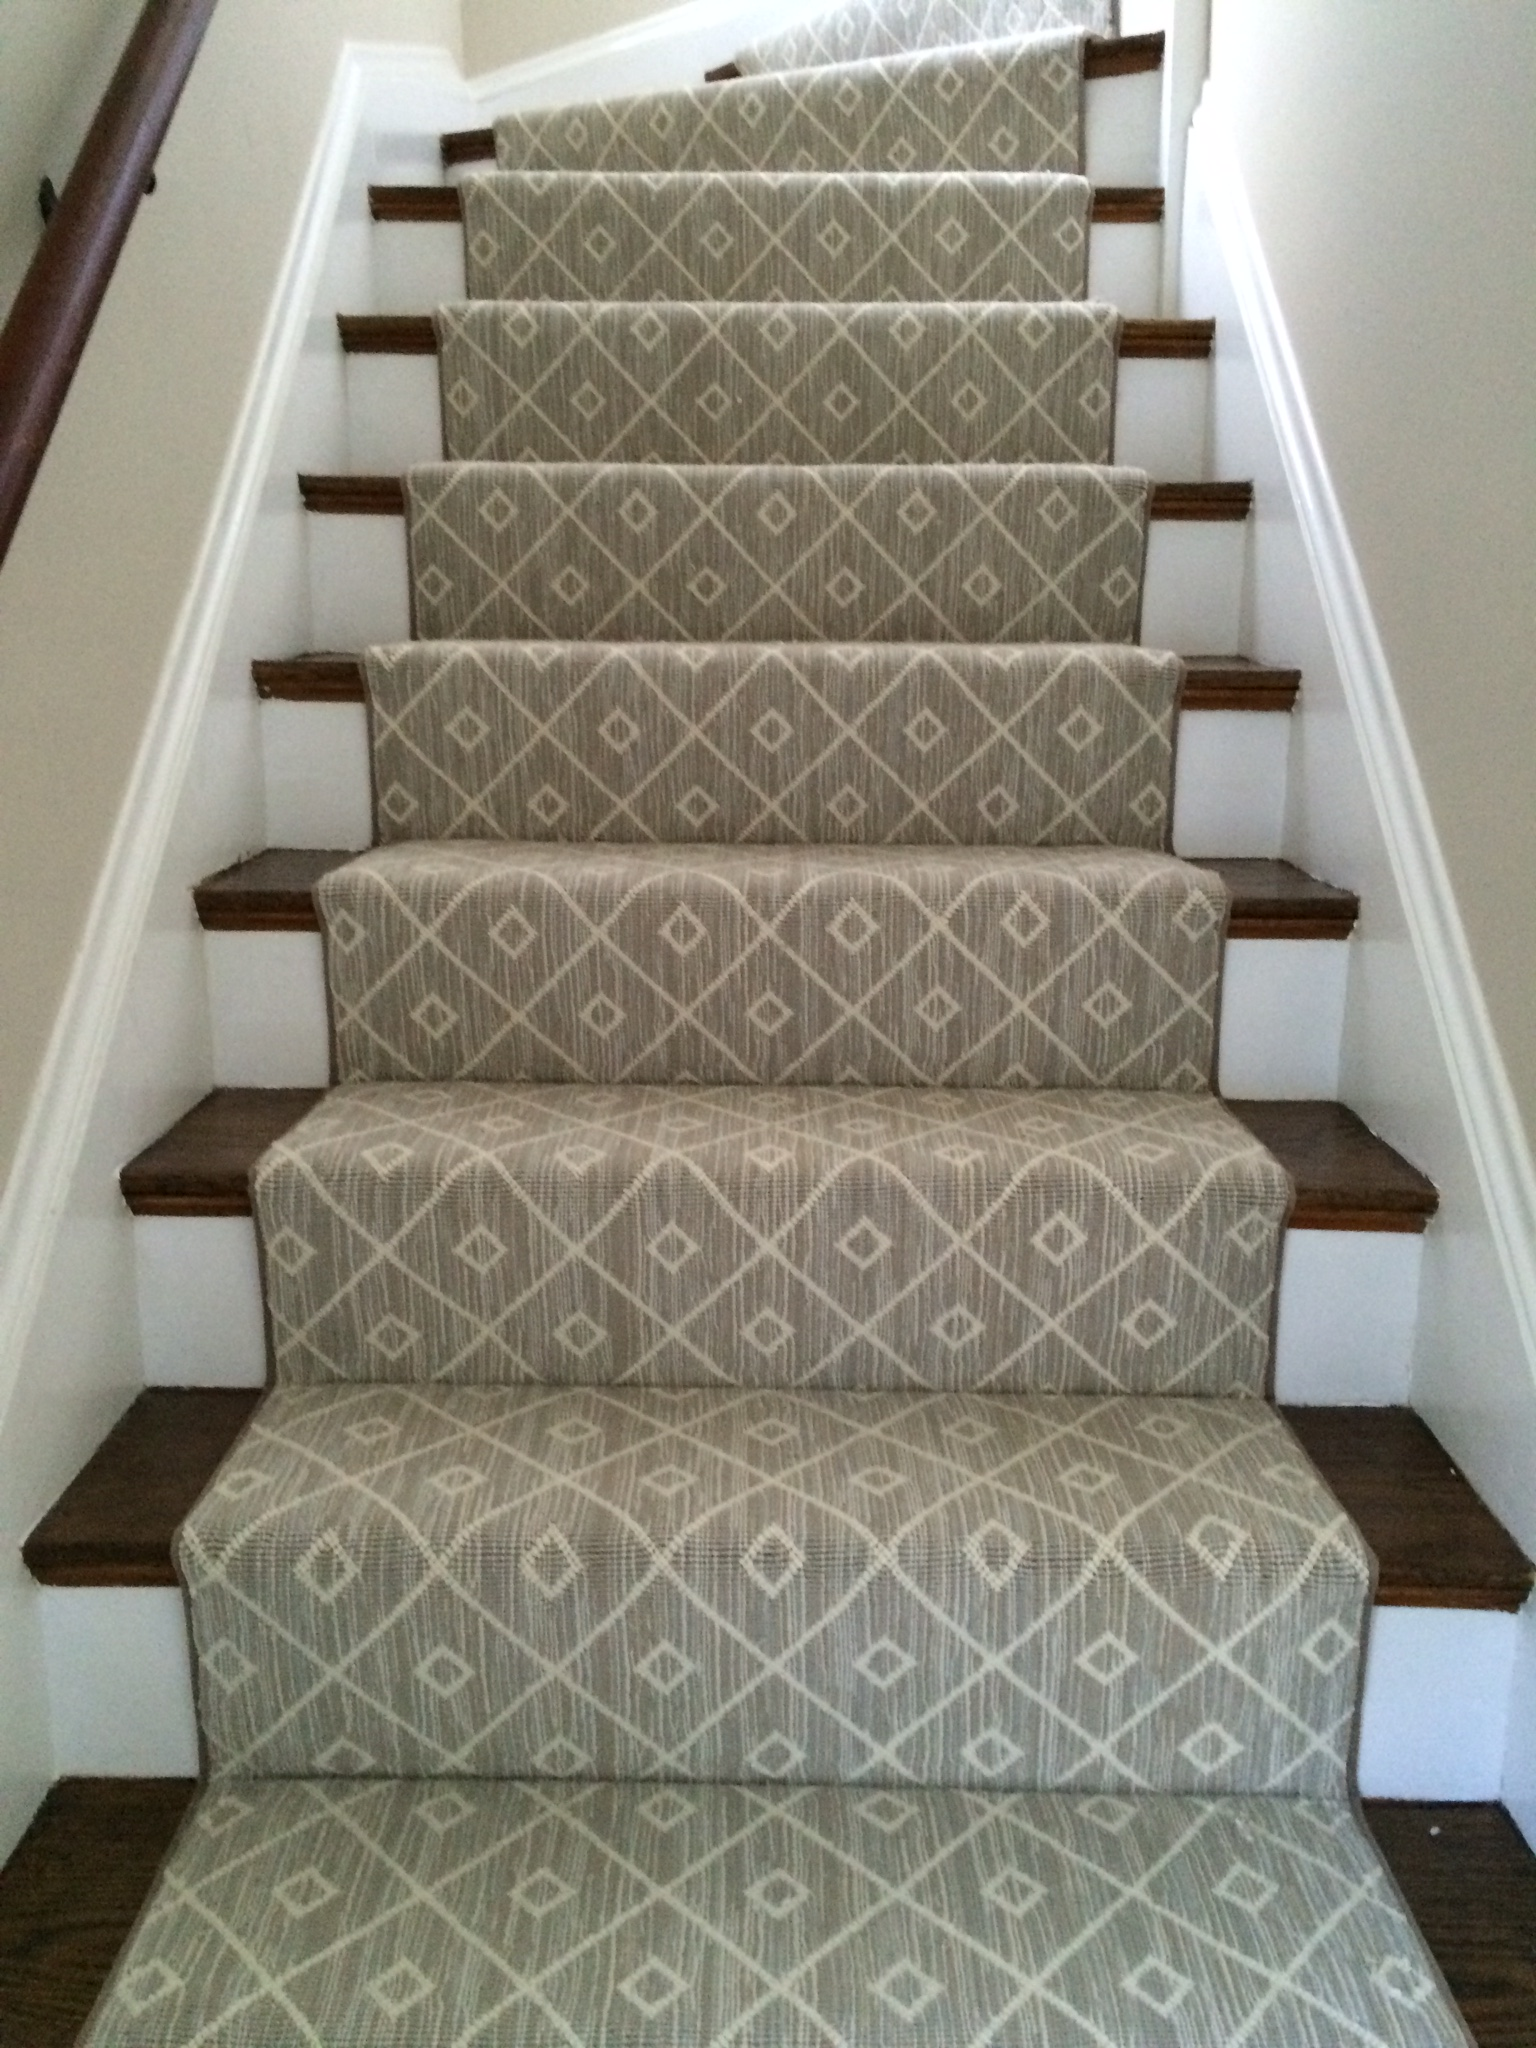 stair carpet this is a silver creek carpet. AWFWLUI